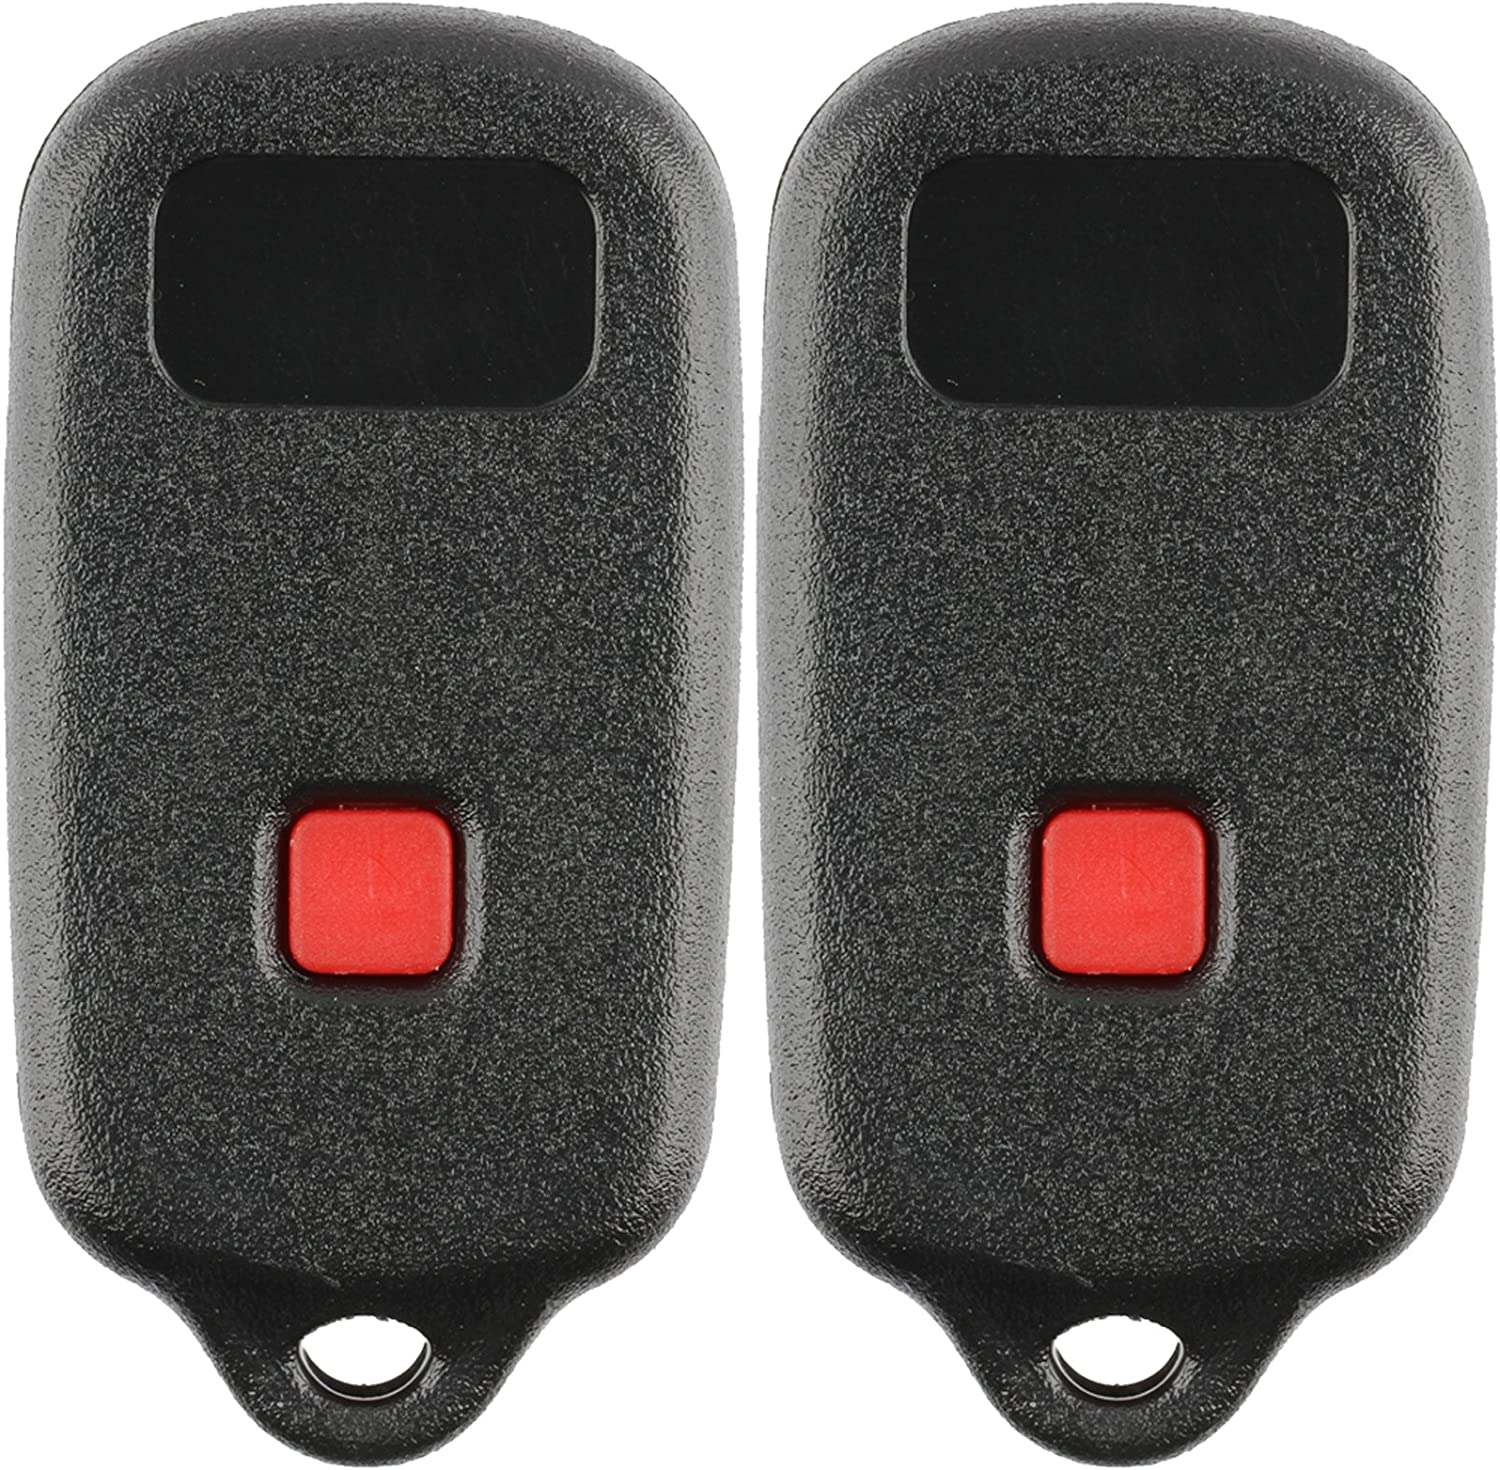 Discount Keyless Replacement Shell Case and Button Pad Compatible with Toyota 4Runner Sequoia HYQ12BBX HYQ12BAN HYQ1512Y